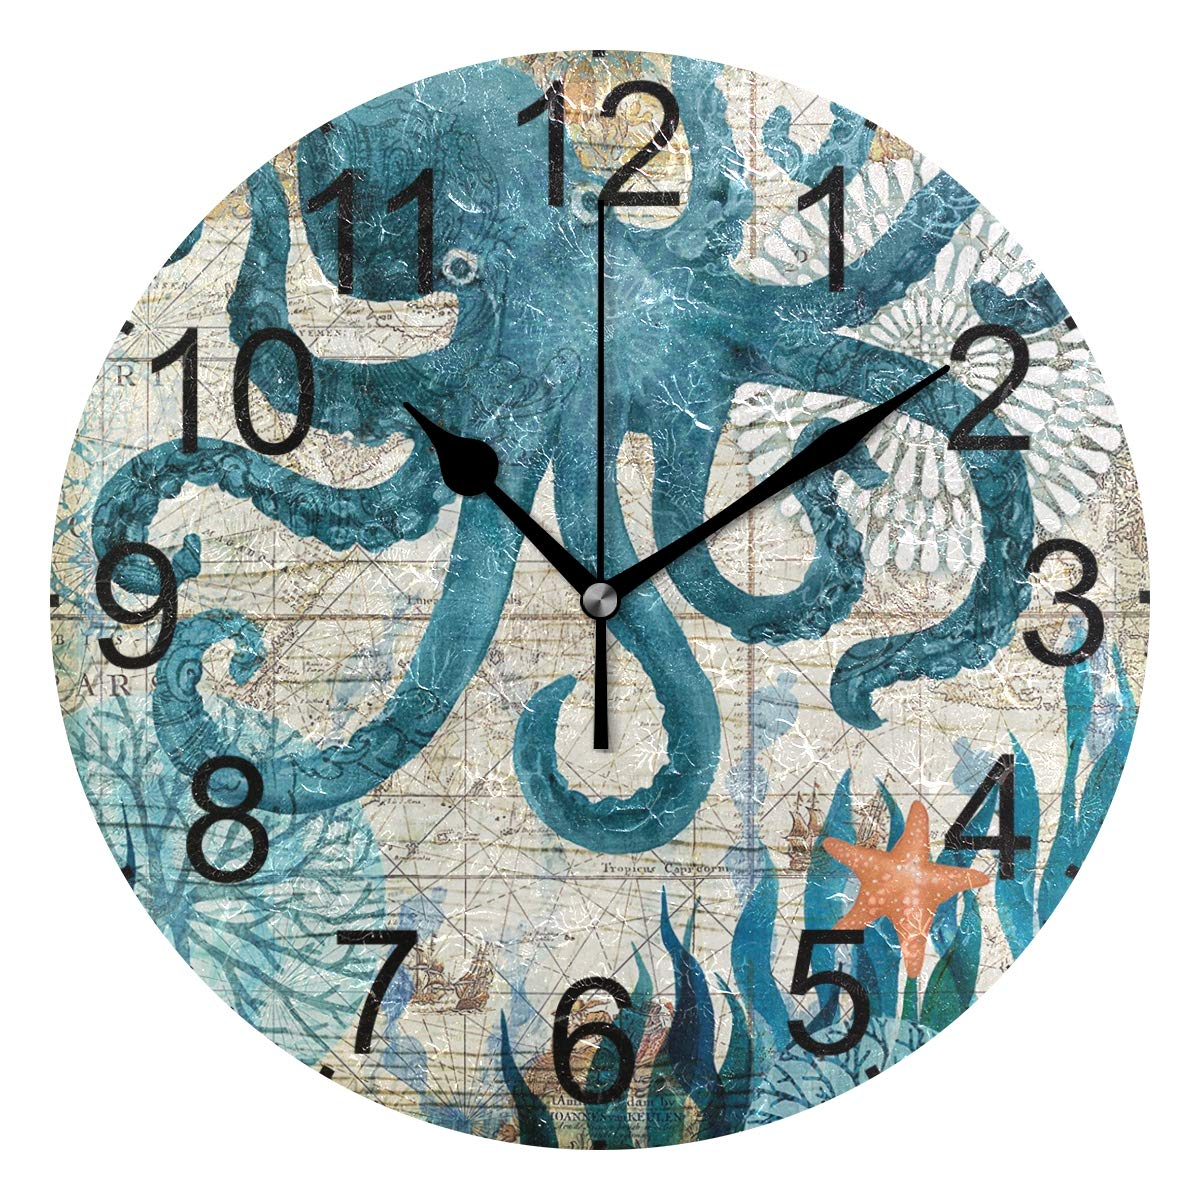 LUCASE LEMON ALEX Blue Octopus Nautical Map Round Acrylic Wall Clock Non Ticking Silent Clocks for Home Decor Living Room Kitchen Bedroom Office School